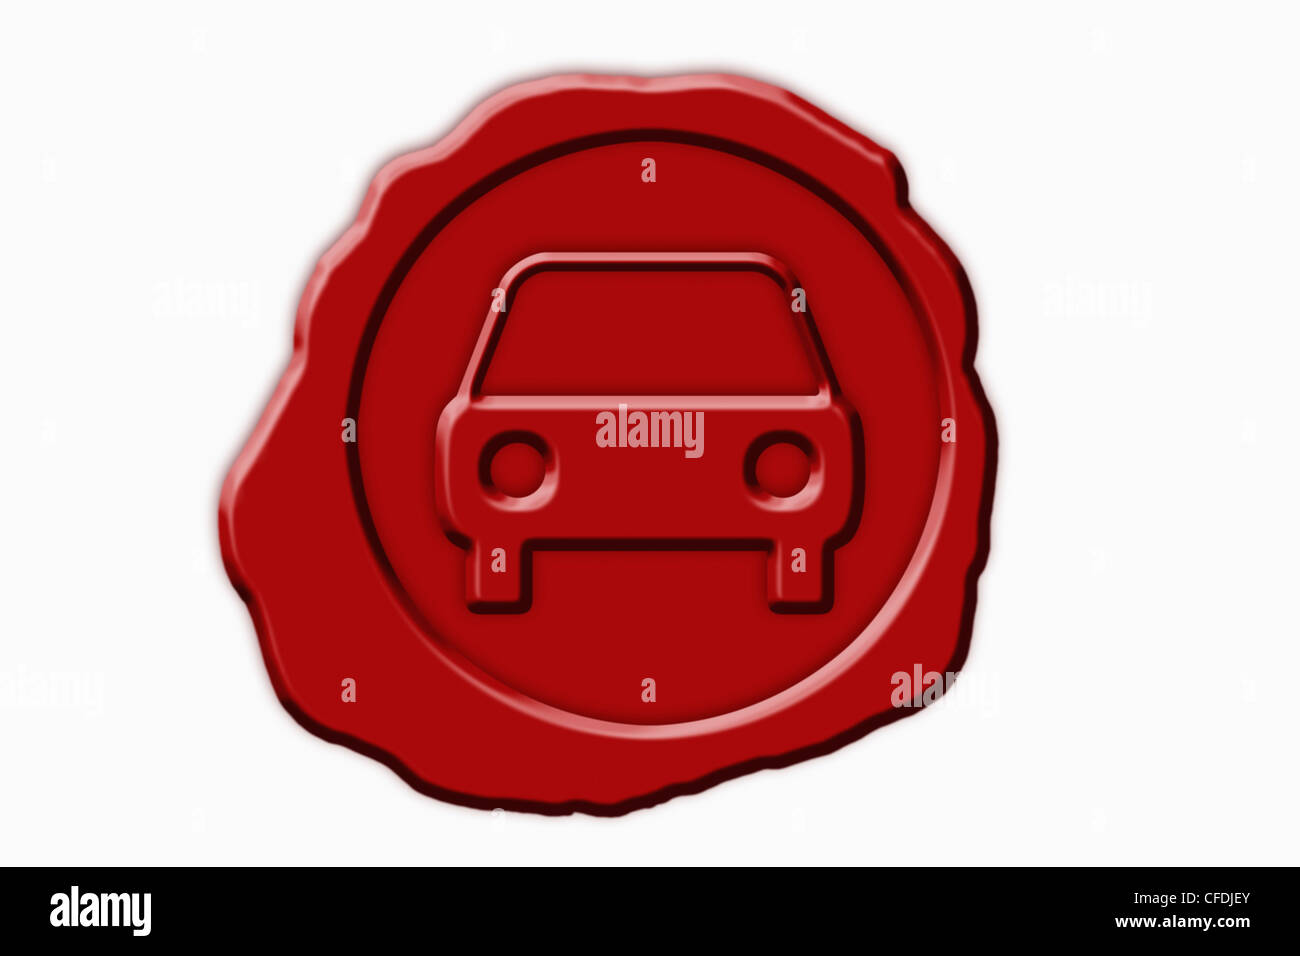 Detail photo of a red seal with a Car Symbol in the middle, front view. - Stock Image